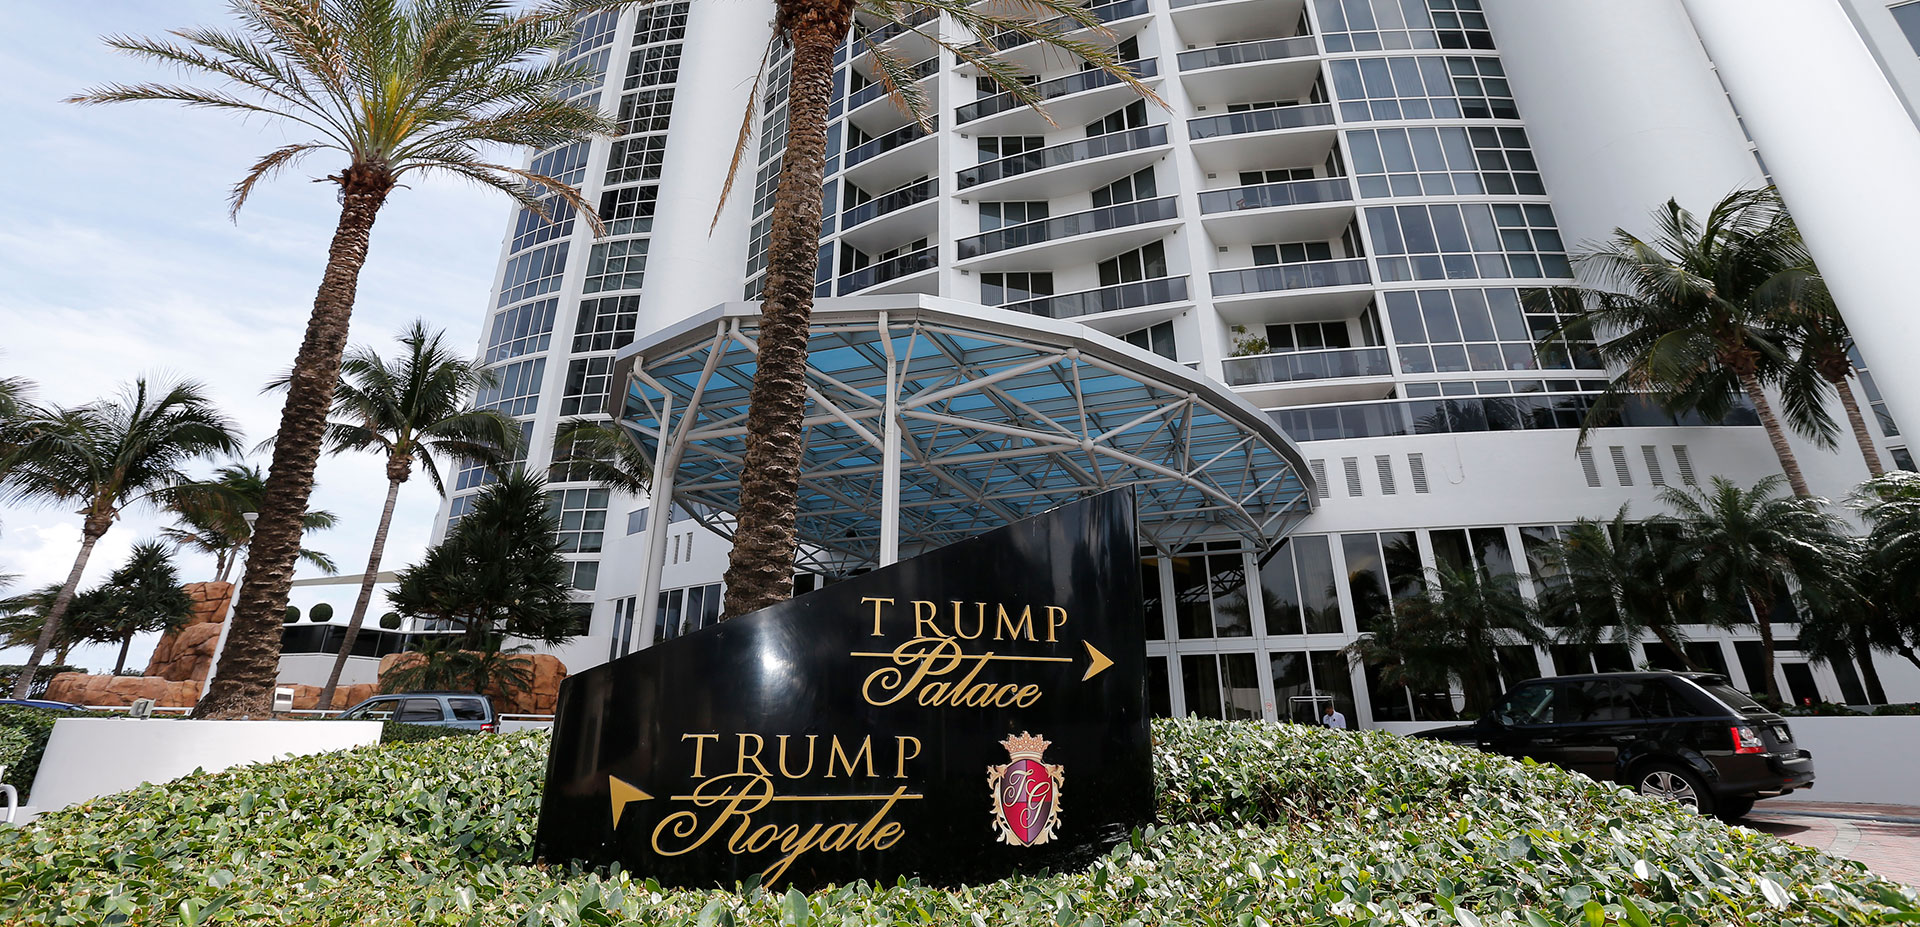 Russian elite invested nearly $100 million in Trump buildings